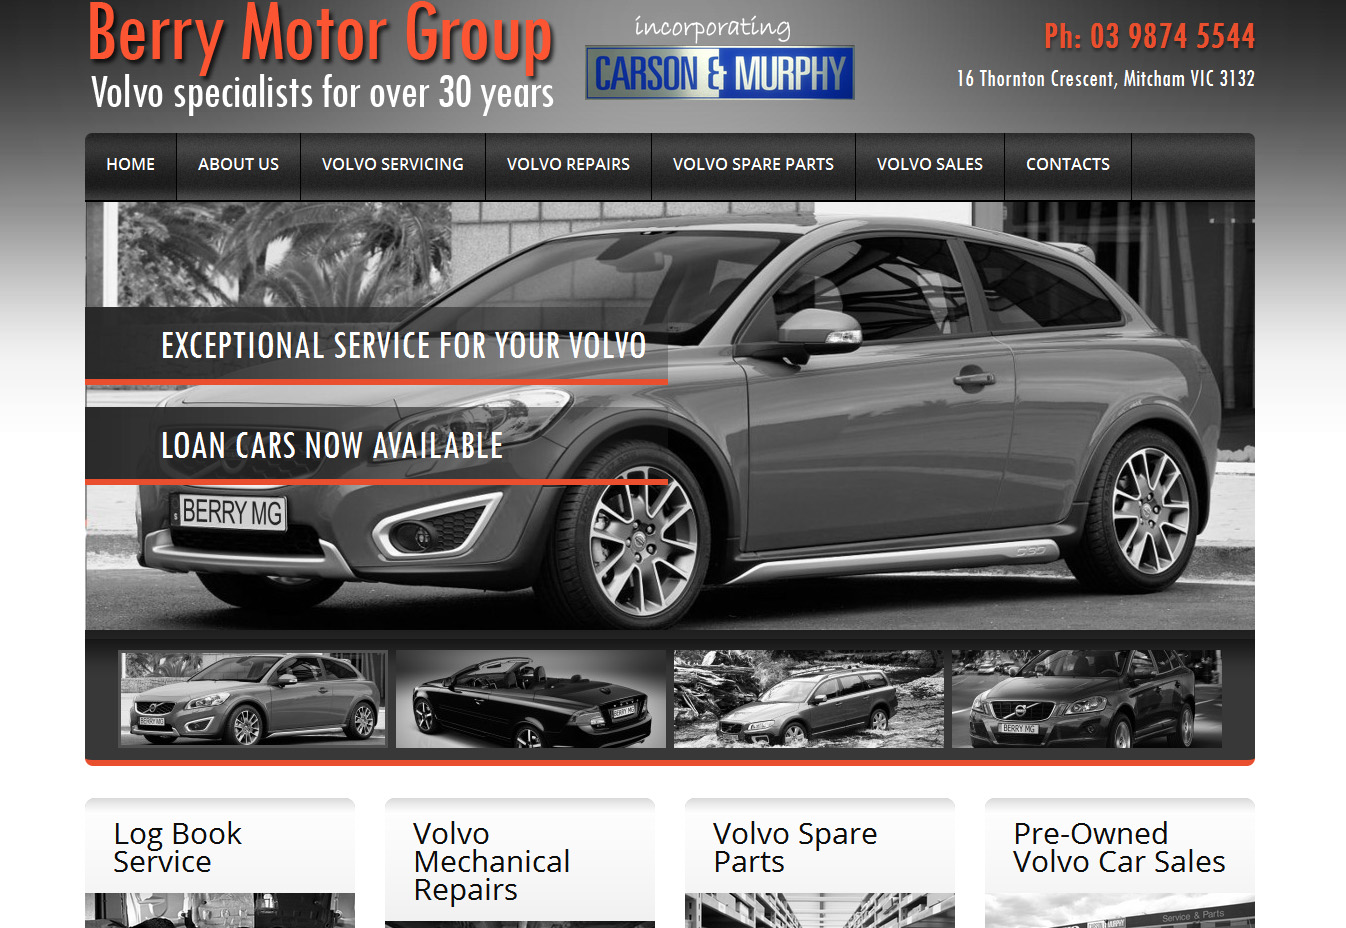 371864-Berry Motor Group website